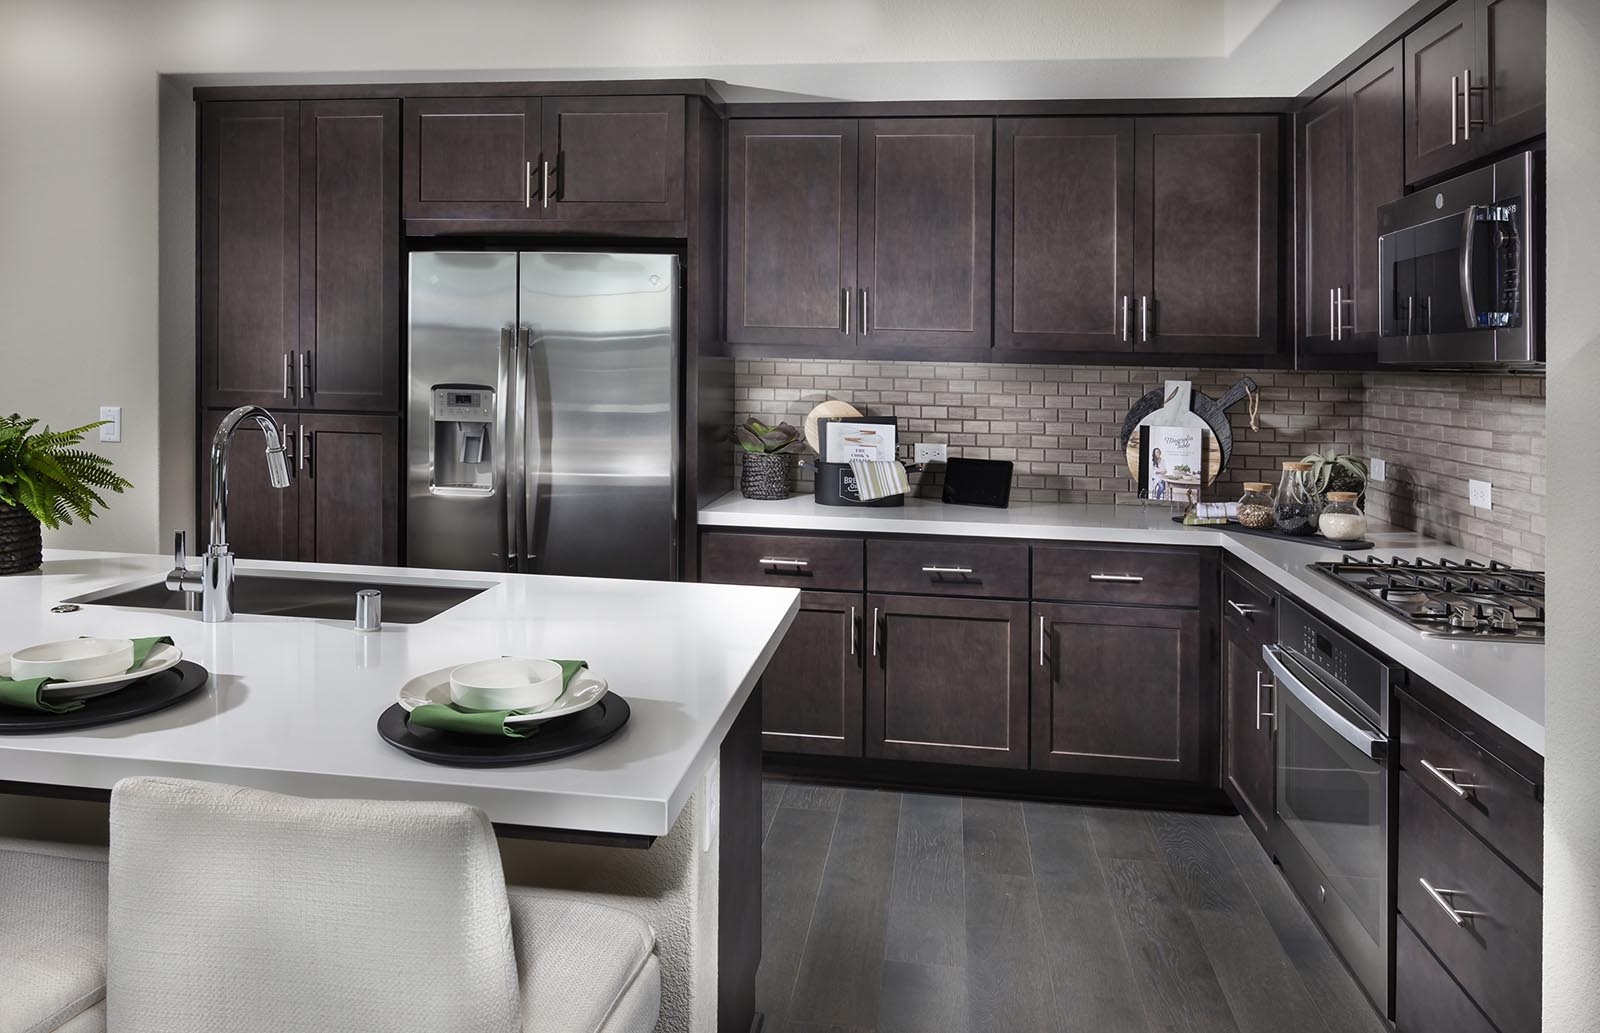 Kitchen detail Residence 1 | Downing at Boulevard by Lennar, Dublin, CA